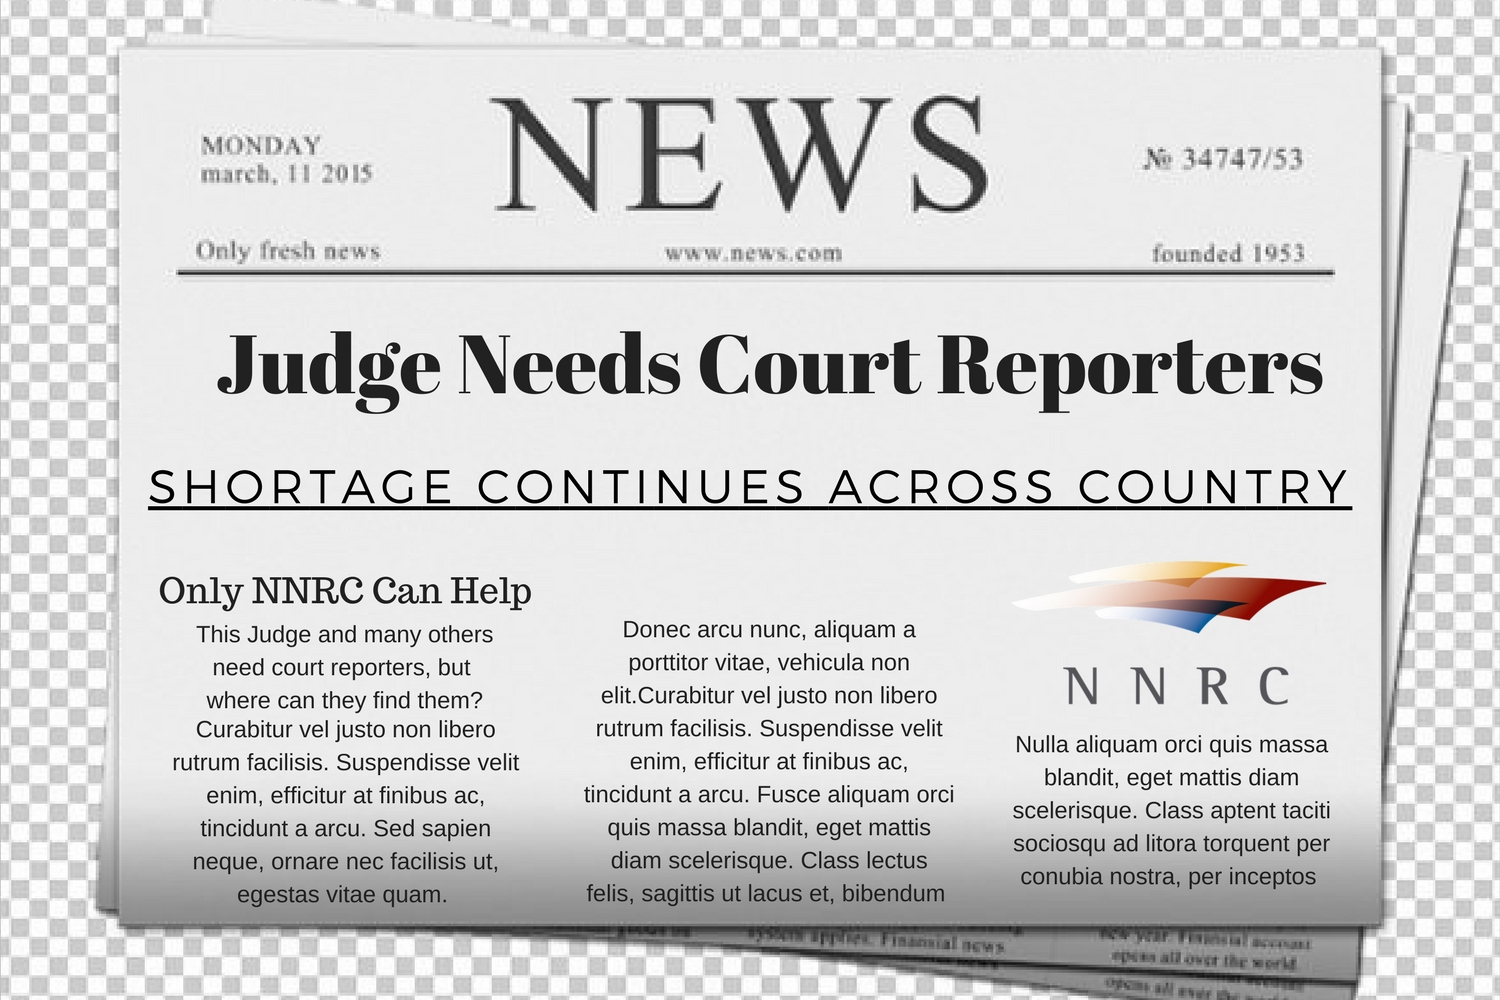 Judge Needs Court Reporter